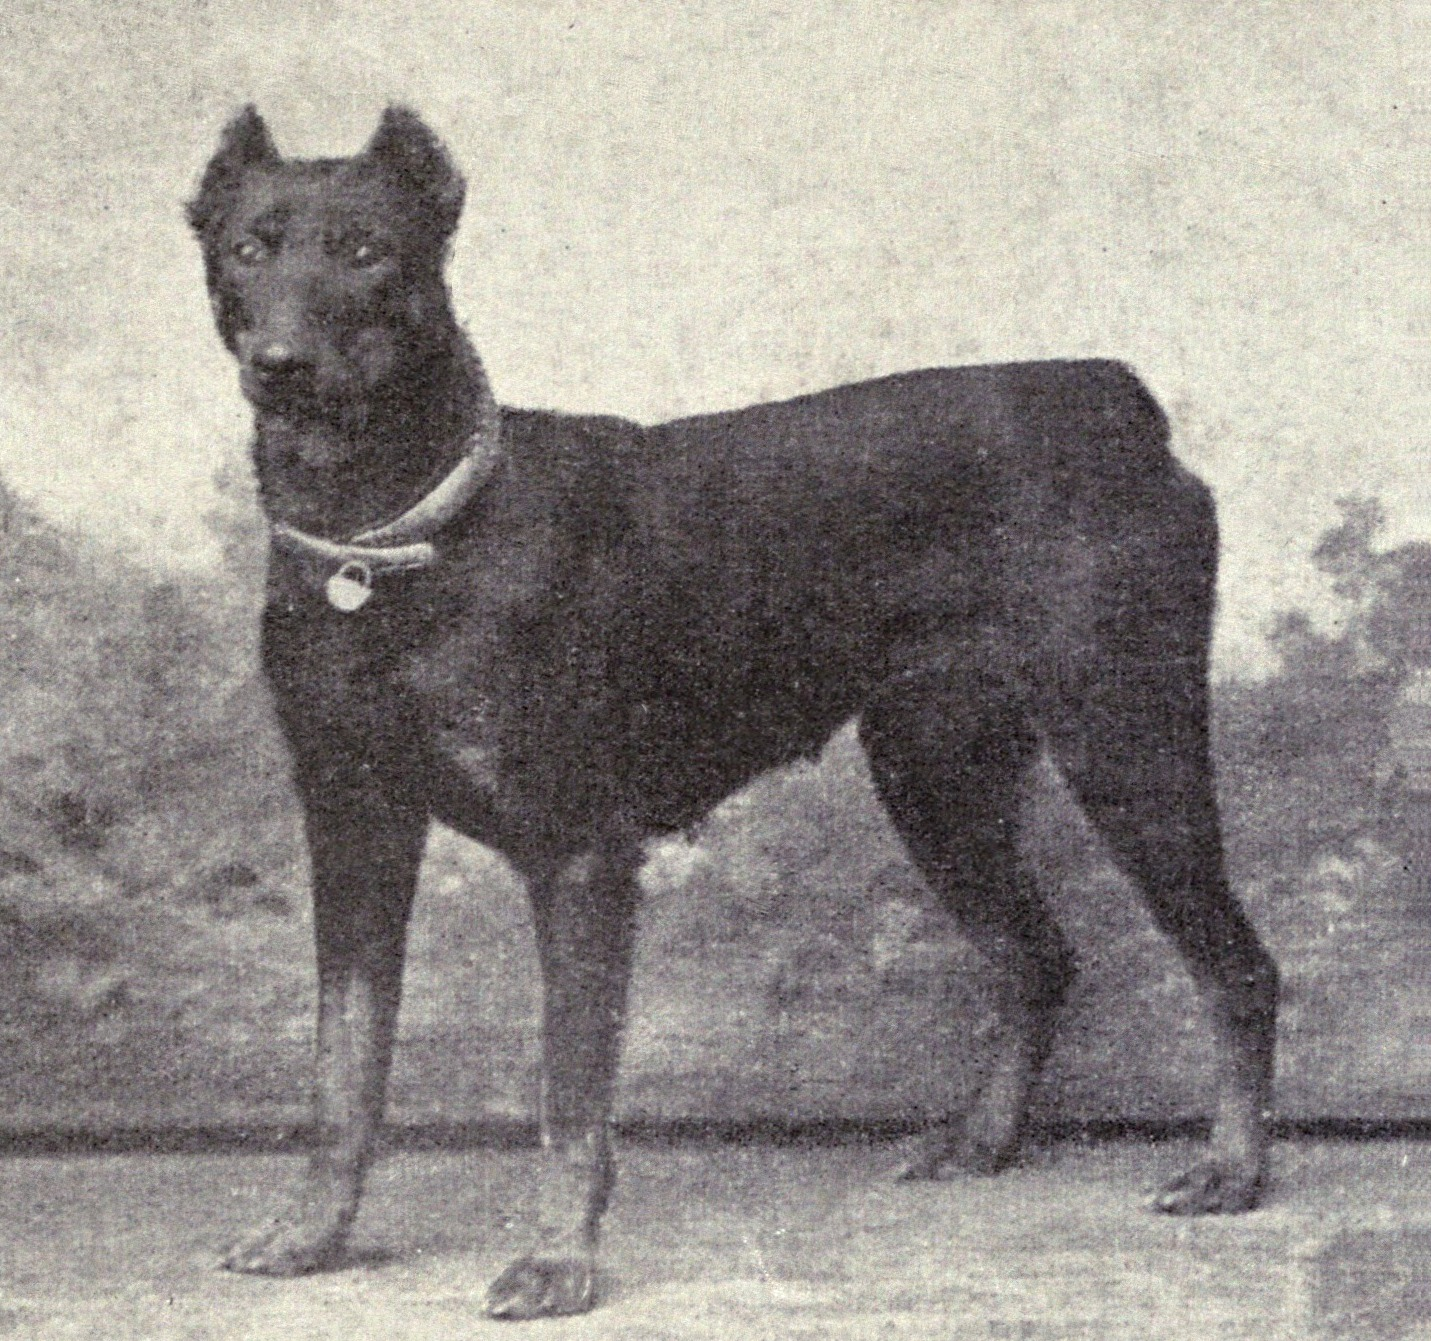 Dobermann Pinscher from 1915